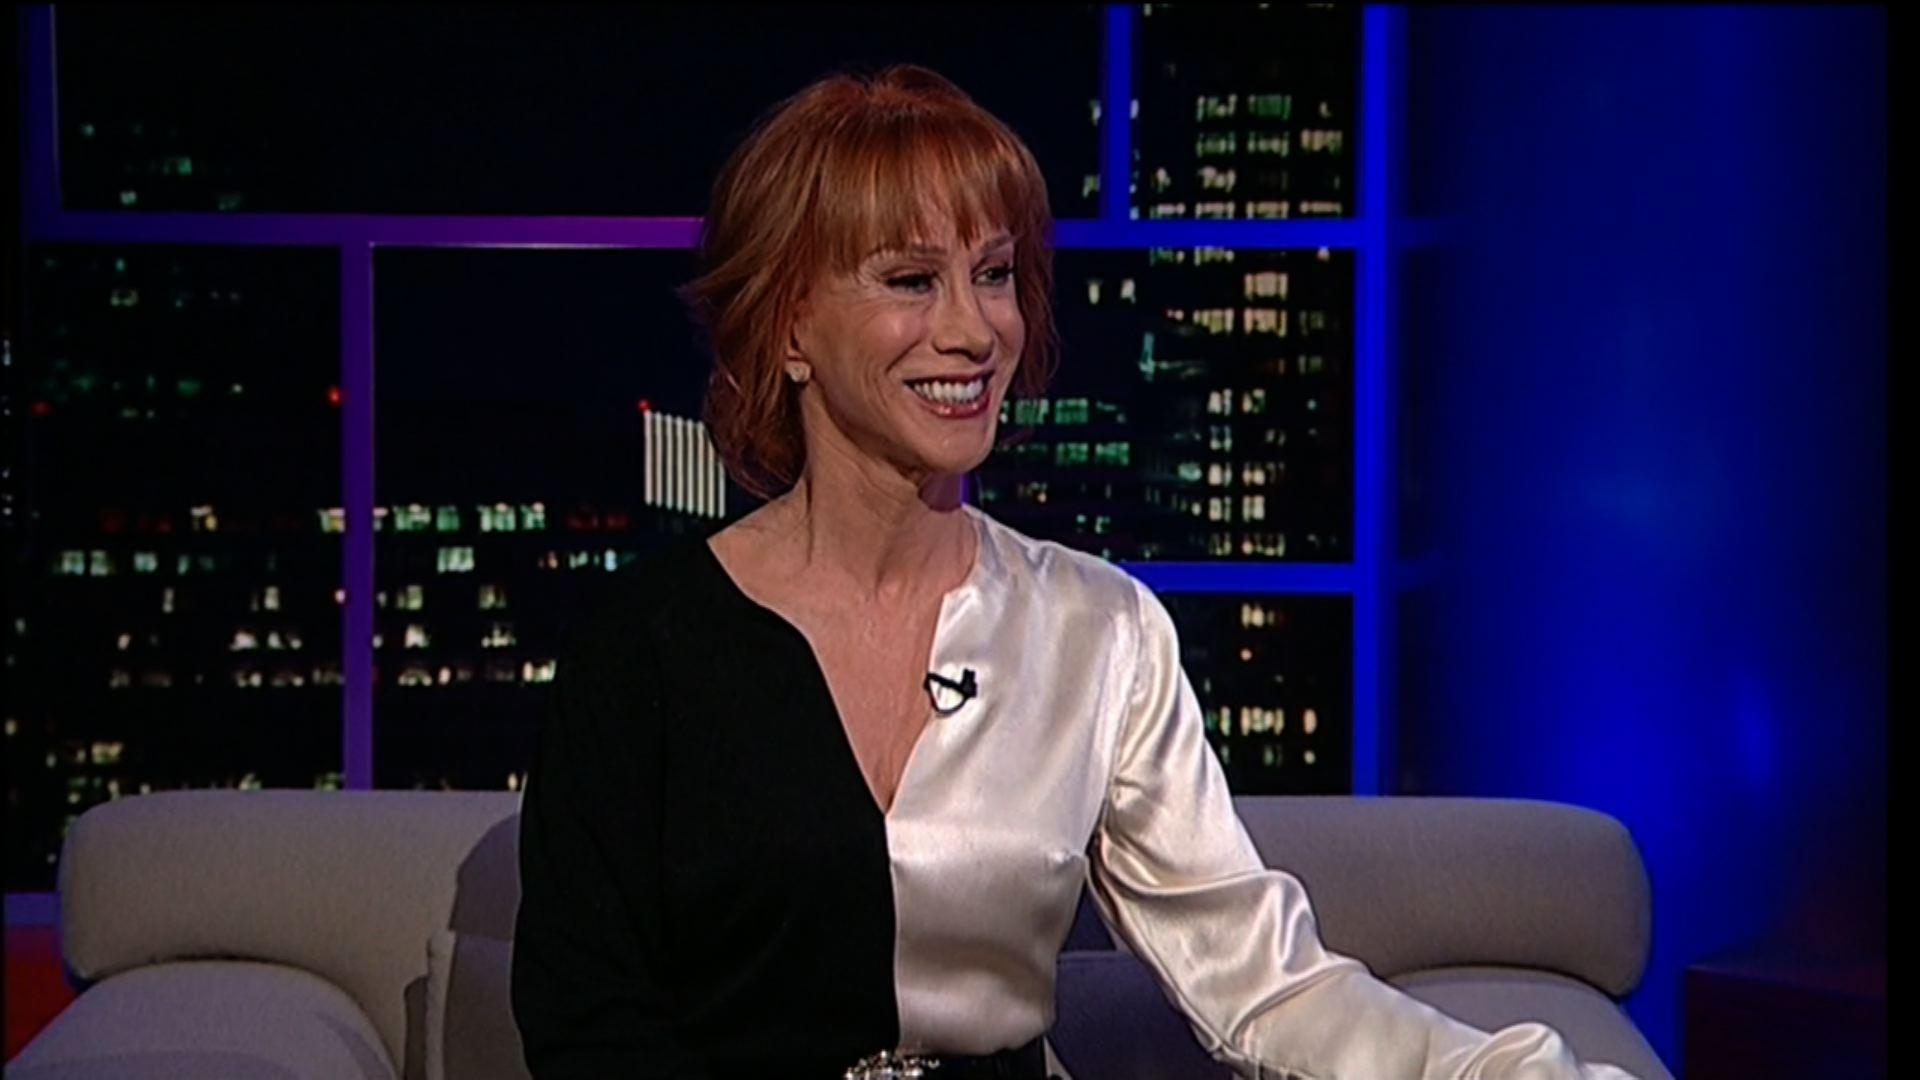 Comedian & author Kathy Griffin